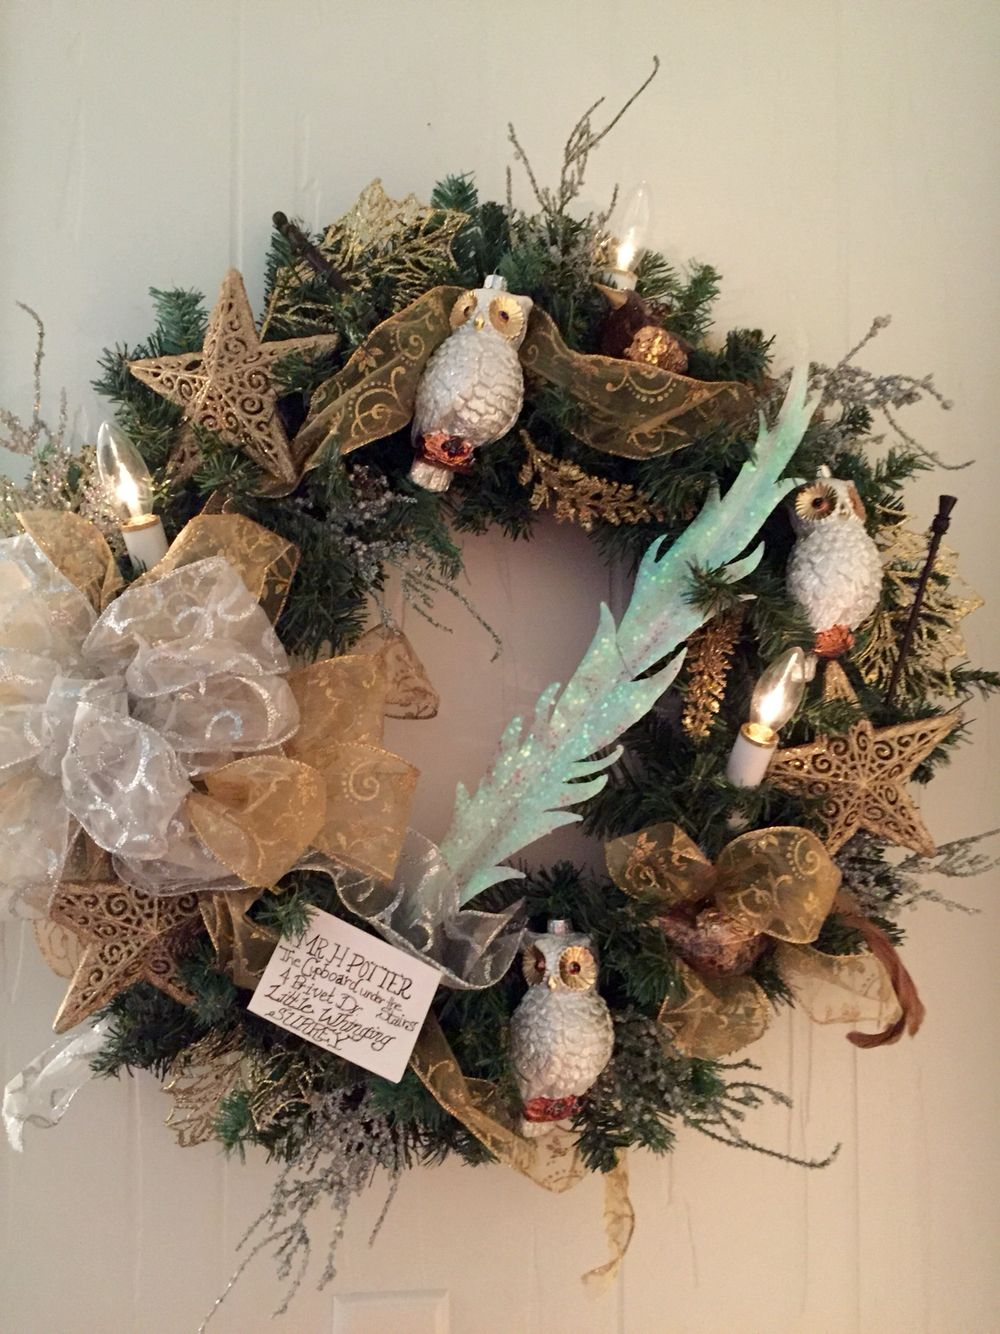 Harry Potter Wreath Made By Me Harry Potter Christmas Decorations Harry Potter Christmas Gifts